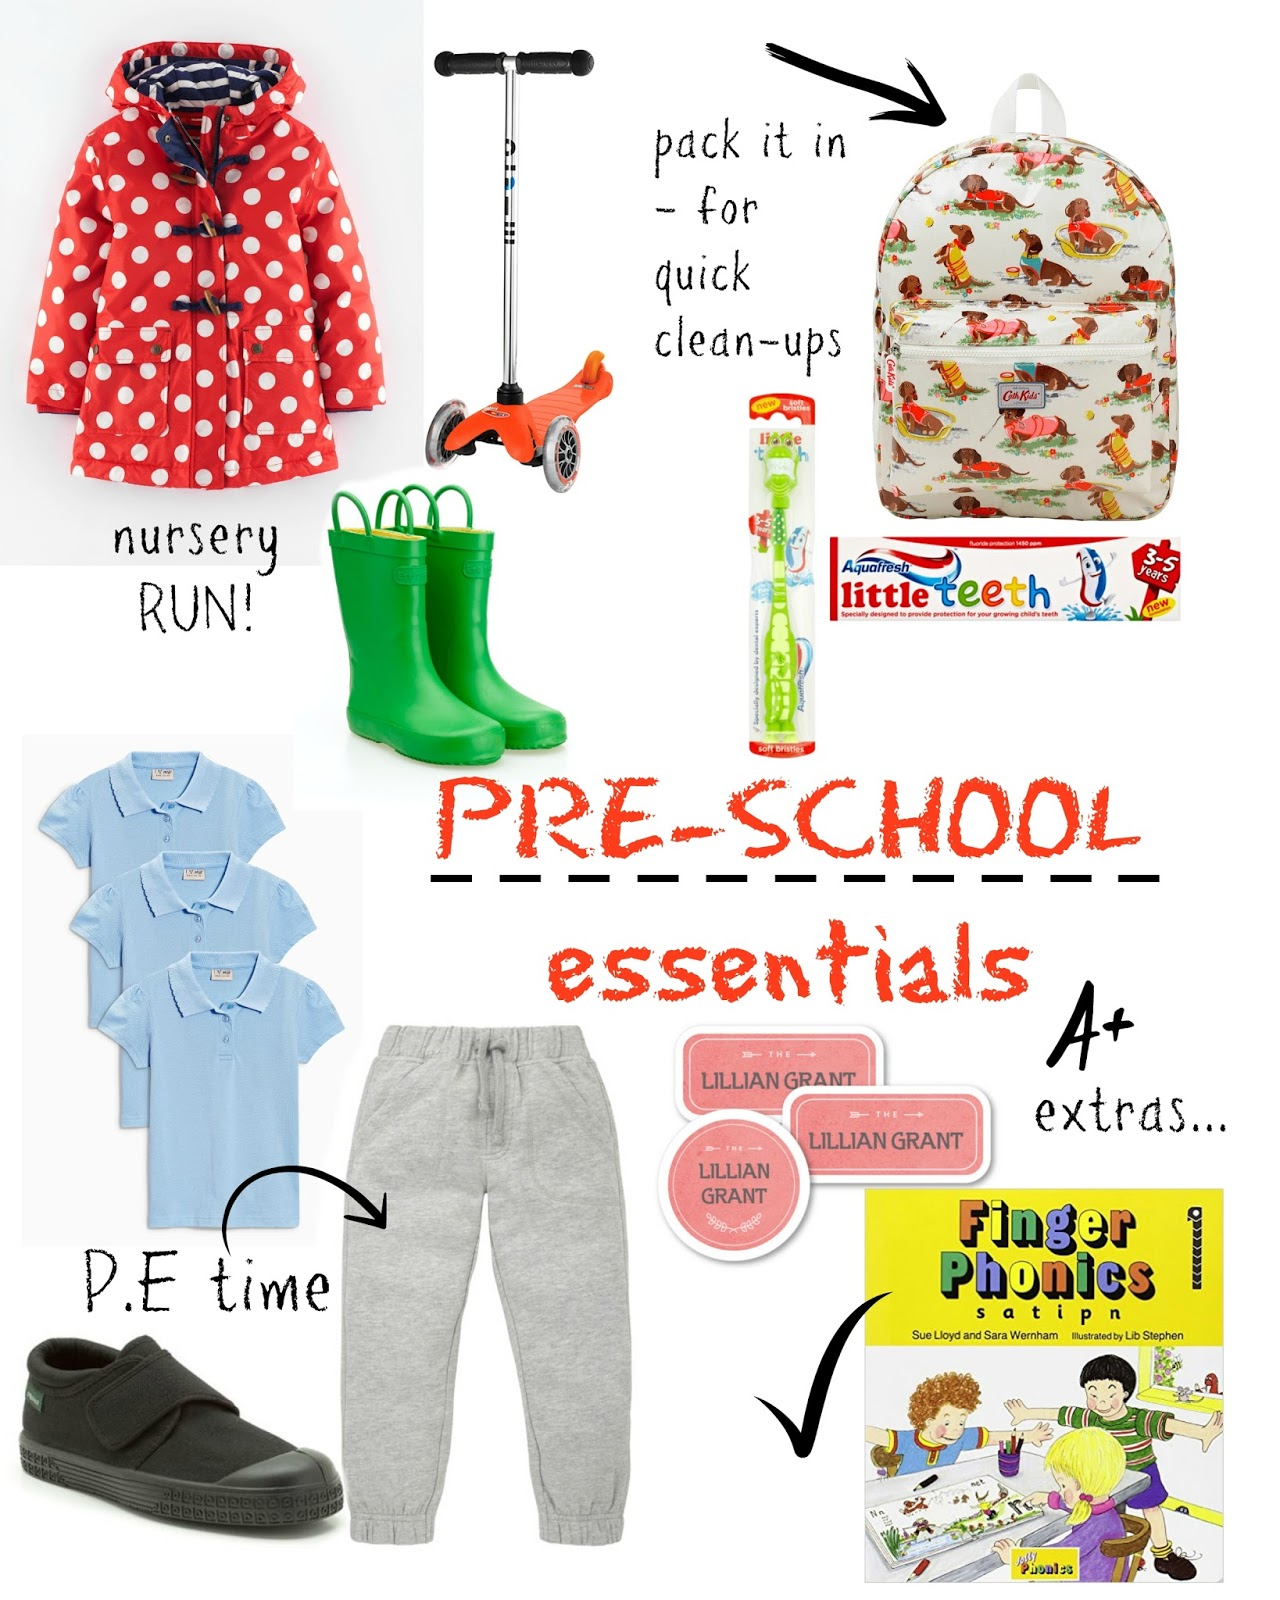 mamasVIB   V. I. BUYS: Getting ready for Pre-School and some stylish little essentials!   pre school   starting school   back to school   september   back to pre school   school essentials   pre school essentials   what to take to pre school   school buys   kids   kids style   boden    clarks   micro scooter   aqua fresh for kids   mothercare   classic plimsolls   tracksuit bottoms for kids   phonics   phonics books   mamasVIB   stylist  whats to take to nursery  buys   shopping